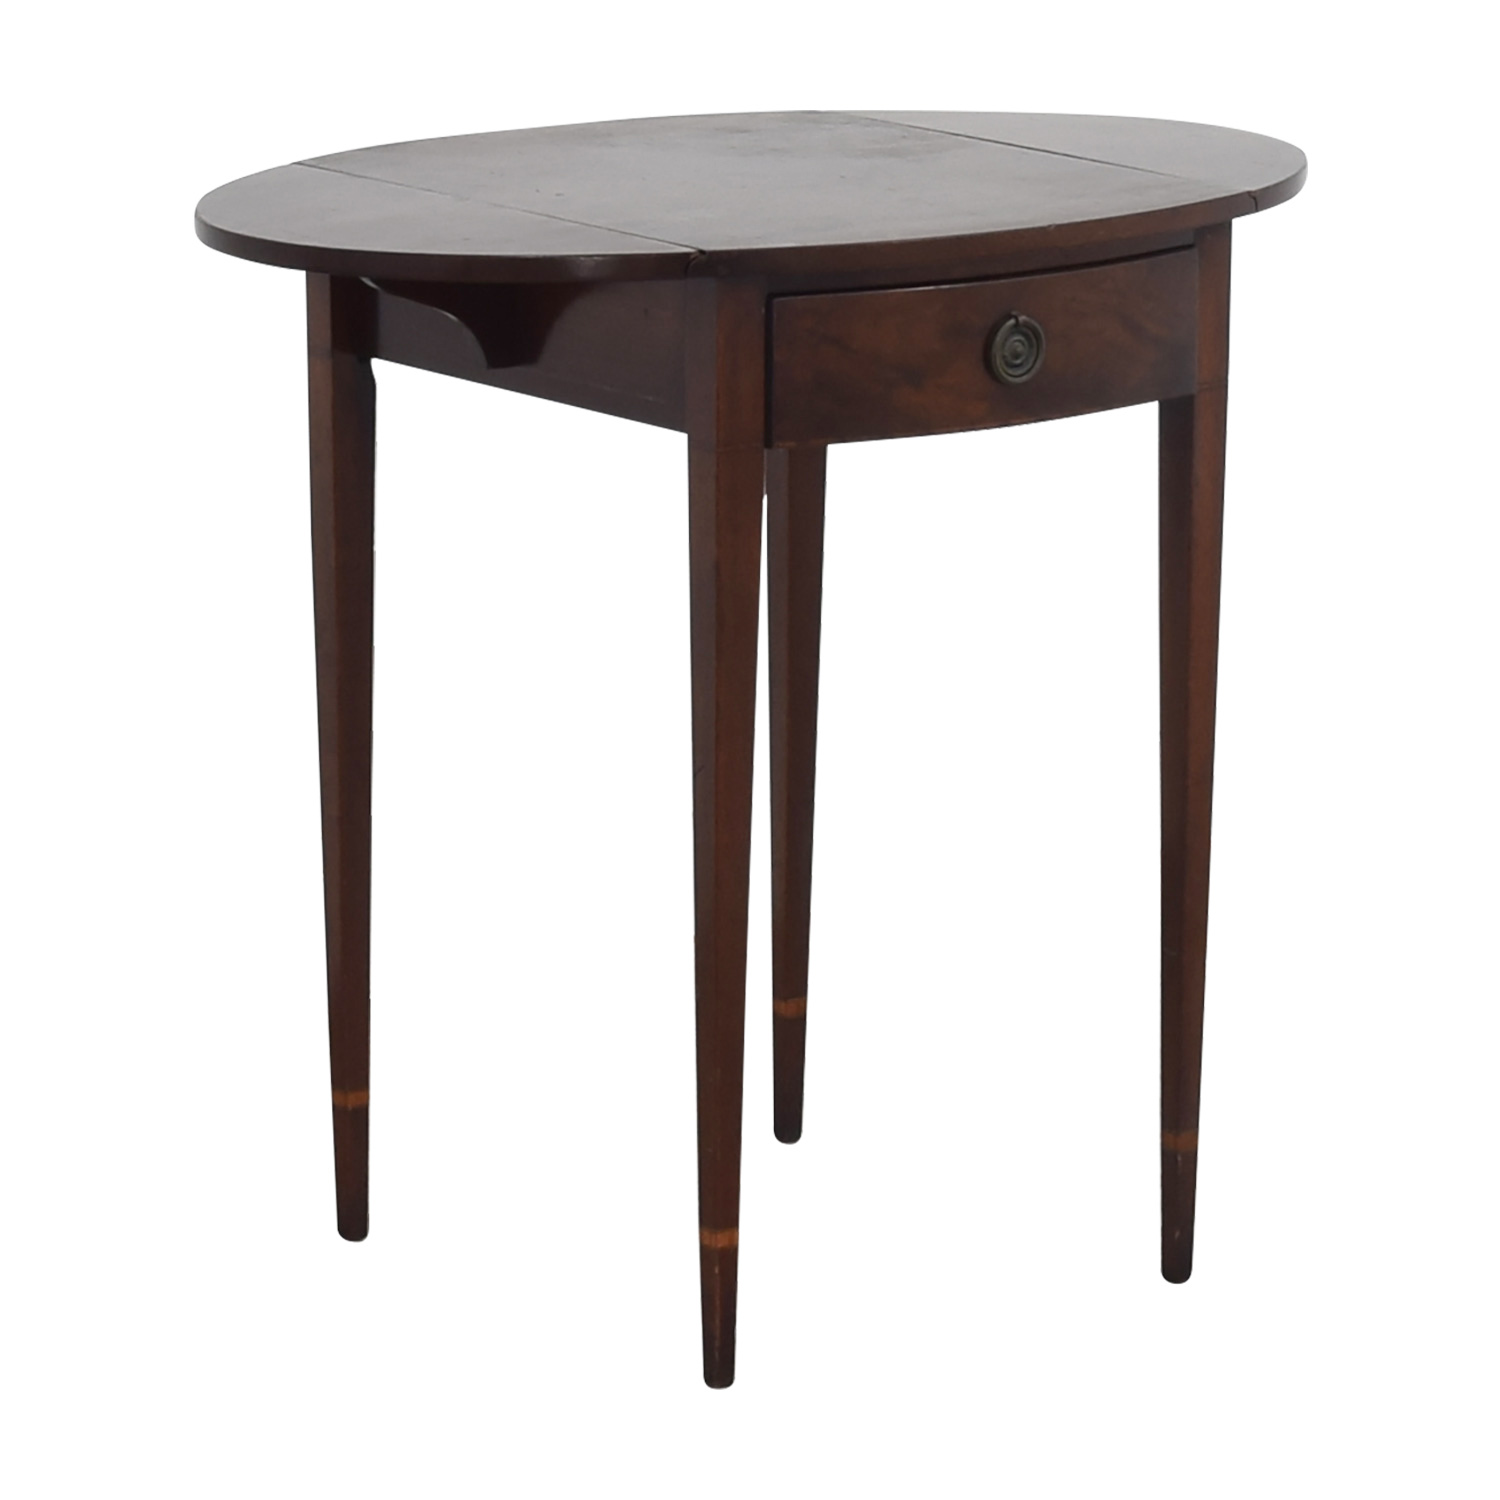 59 Off Beacon Hill Collection Beacon Hill Collection Antique Expandable Single Drawer Side Table Tables